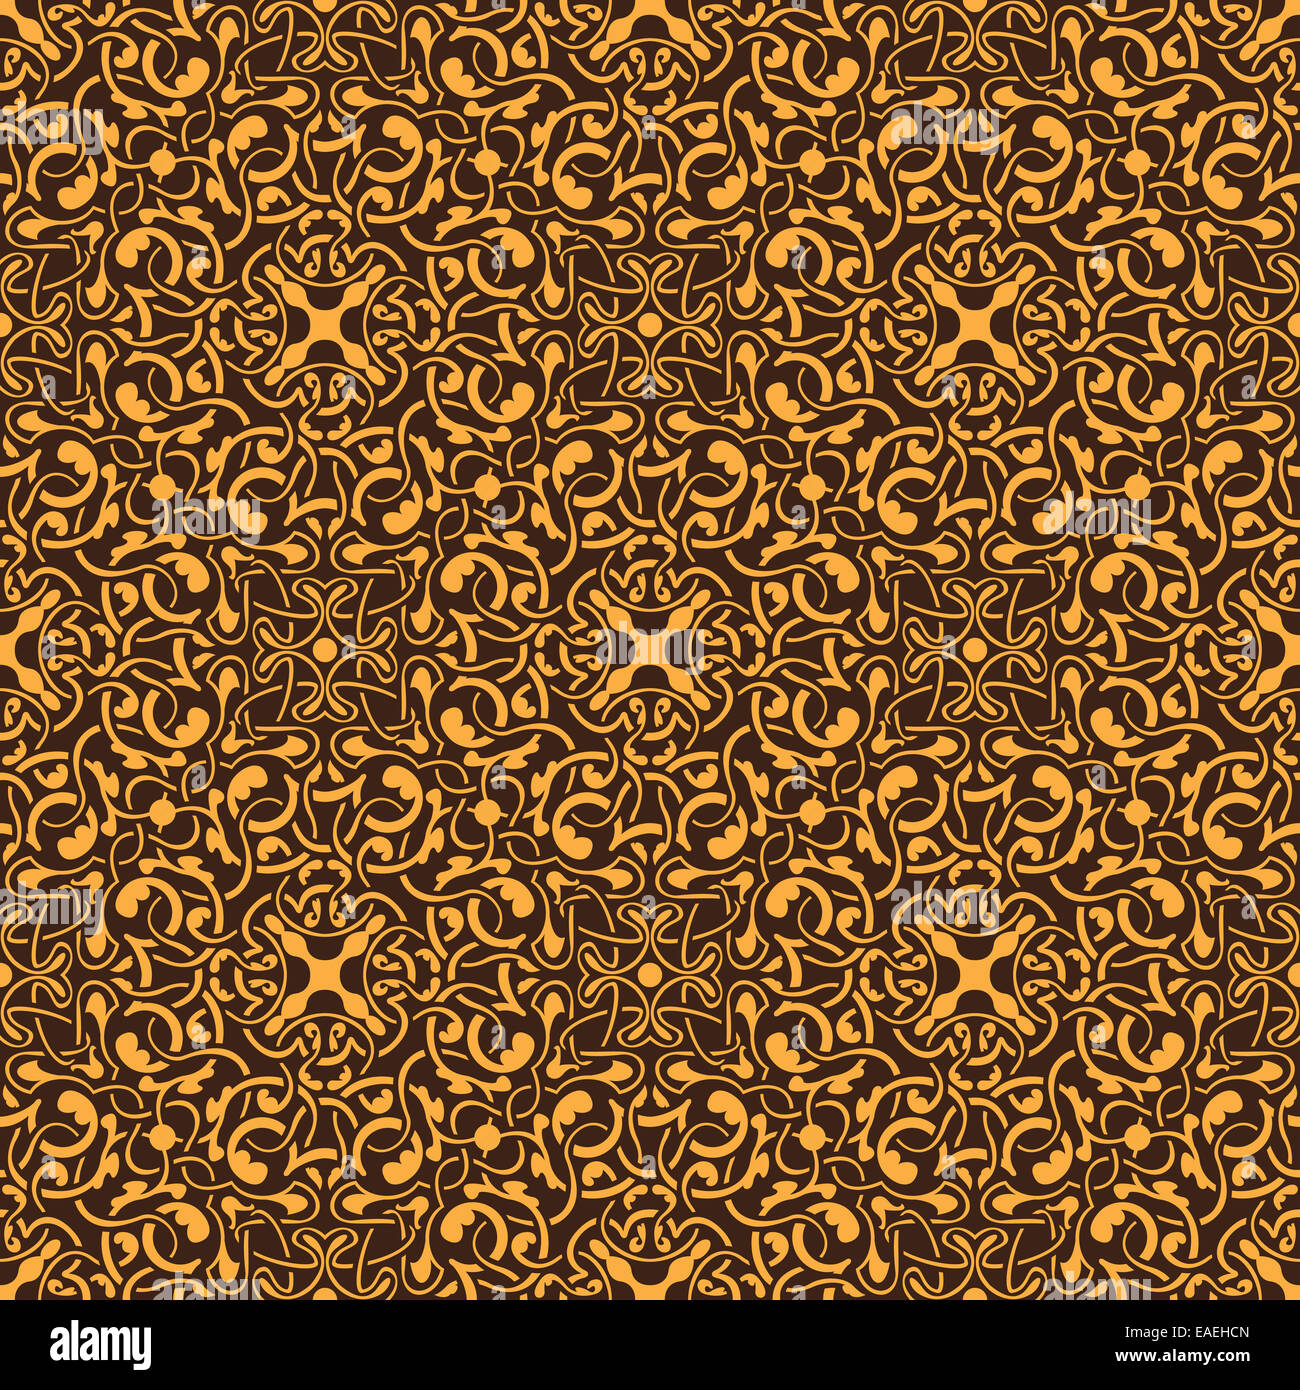 Yellow floral seamless wallpaper pattern vector illustration - Stock Image